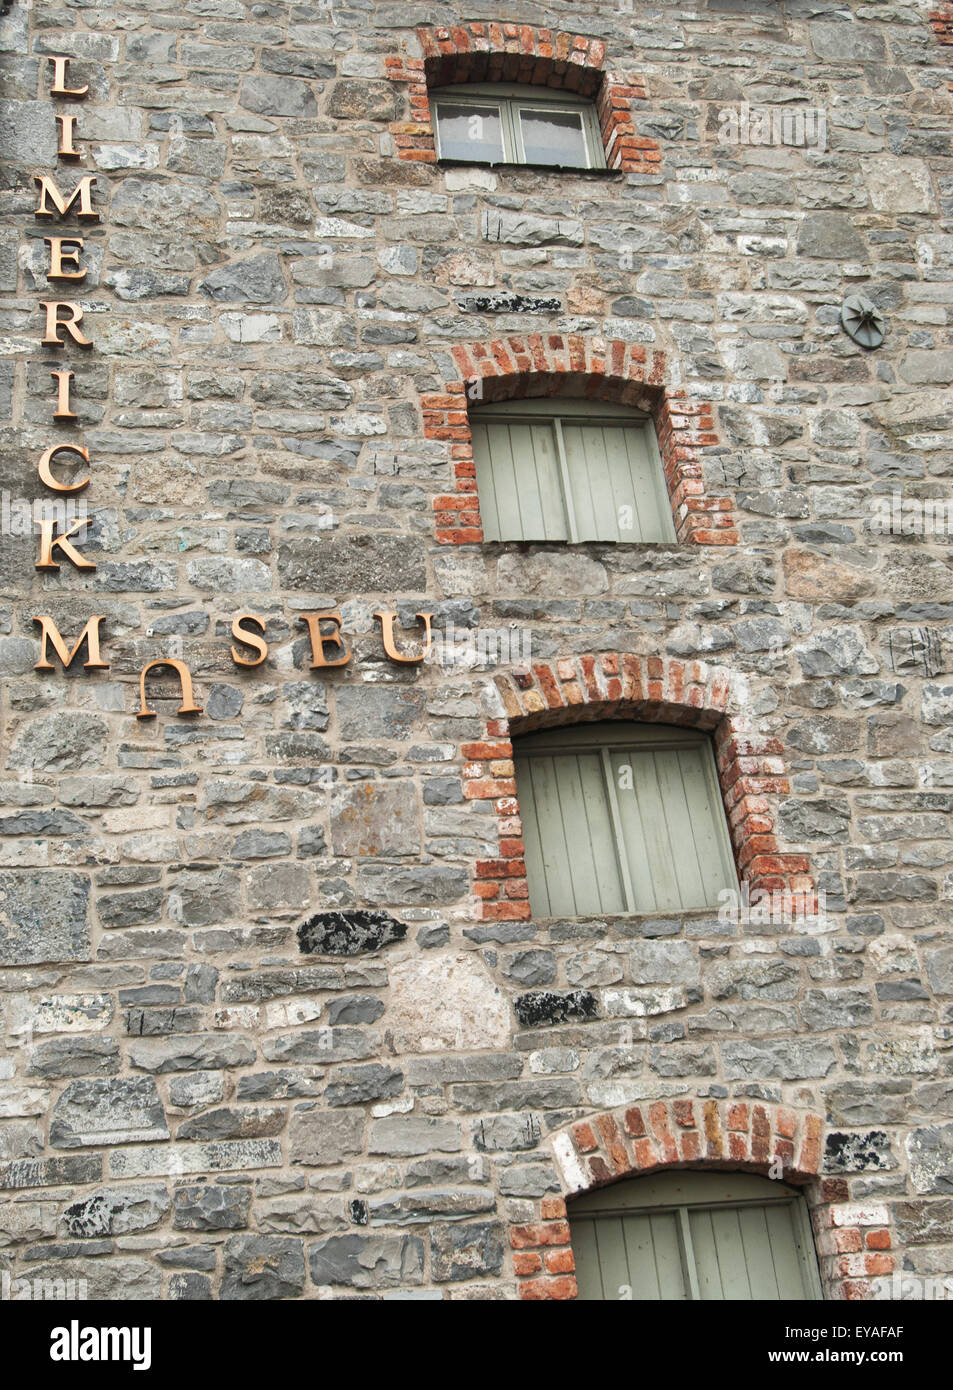 Broken Sign For Limerick Museum On The Side Of A Stone Building; Limerick, County Limerick, Ireland - Stock Image